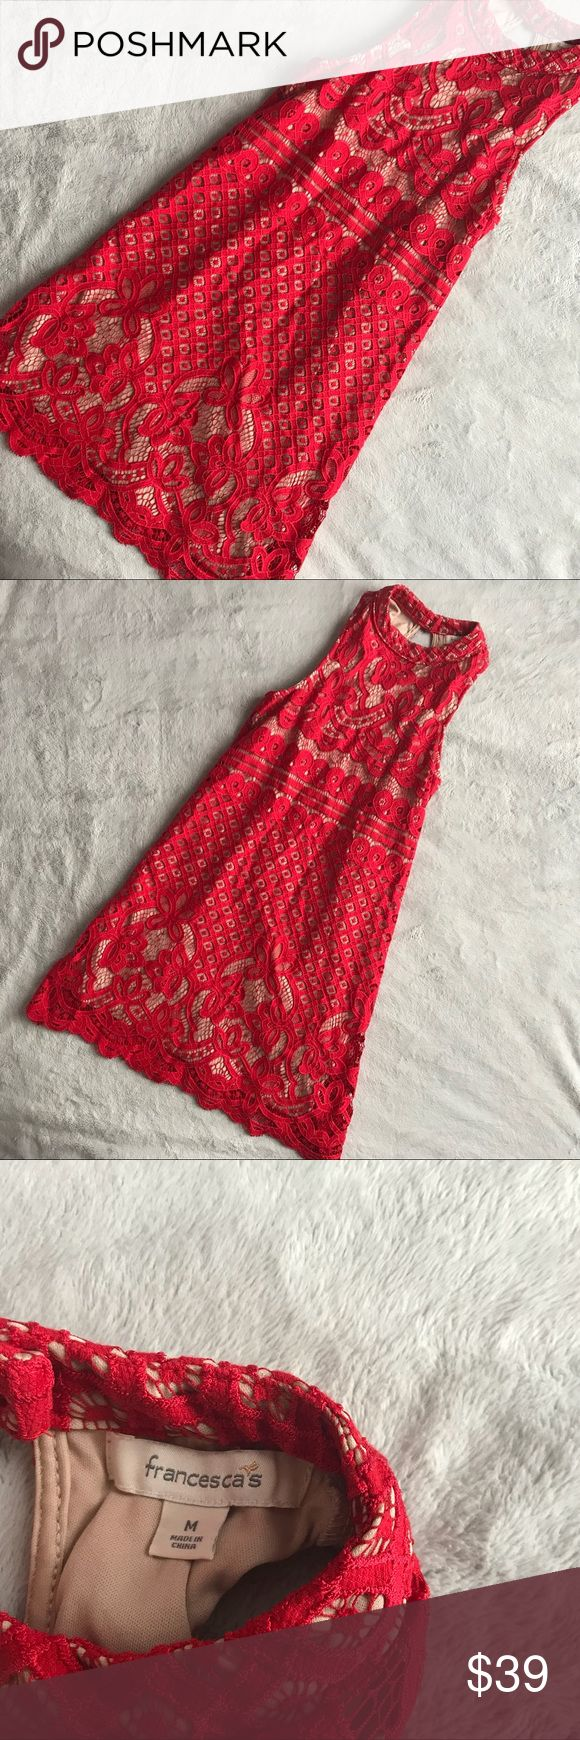 Francesca's Red Lace Valentine Halter Mini Dress Excellent used condition. Halter mini dress by Francesca's Collection in red lace overlay with an attached nude slip dress. Perfect for Valentine's Day. Rounded halter neckline with back button closure. Gorgeous floral and geometric print lace overlay. Sleeveless with fitted bodice and slight flare skirt. Size medium, can also work for a small, see photos for measurements. Francesca's Collections Dresses